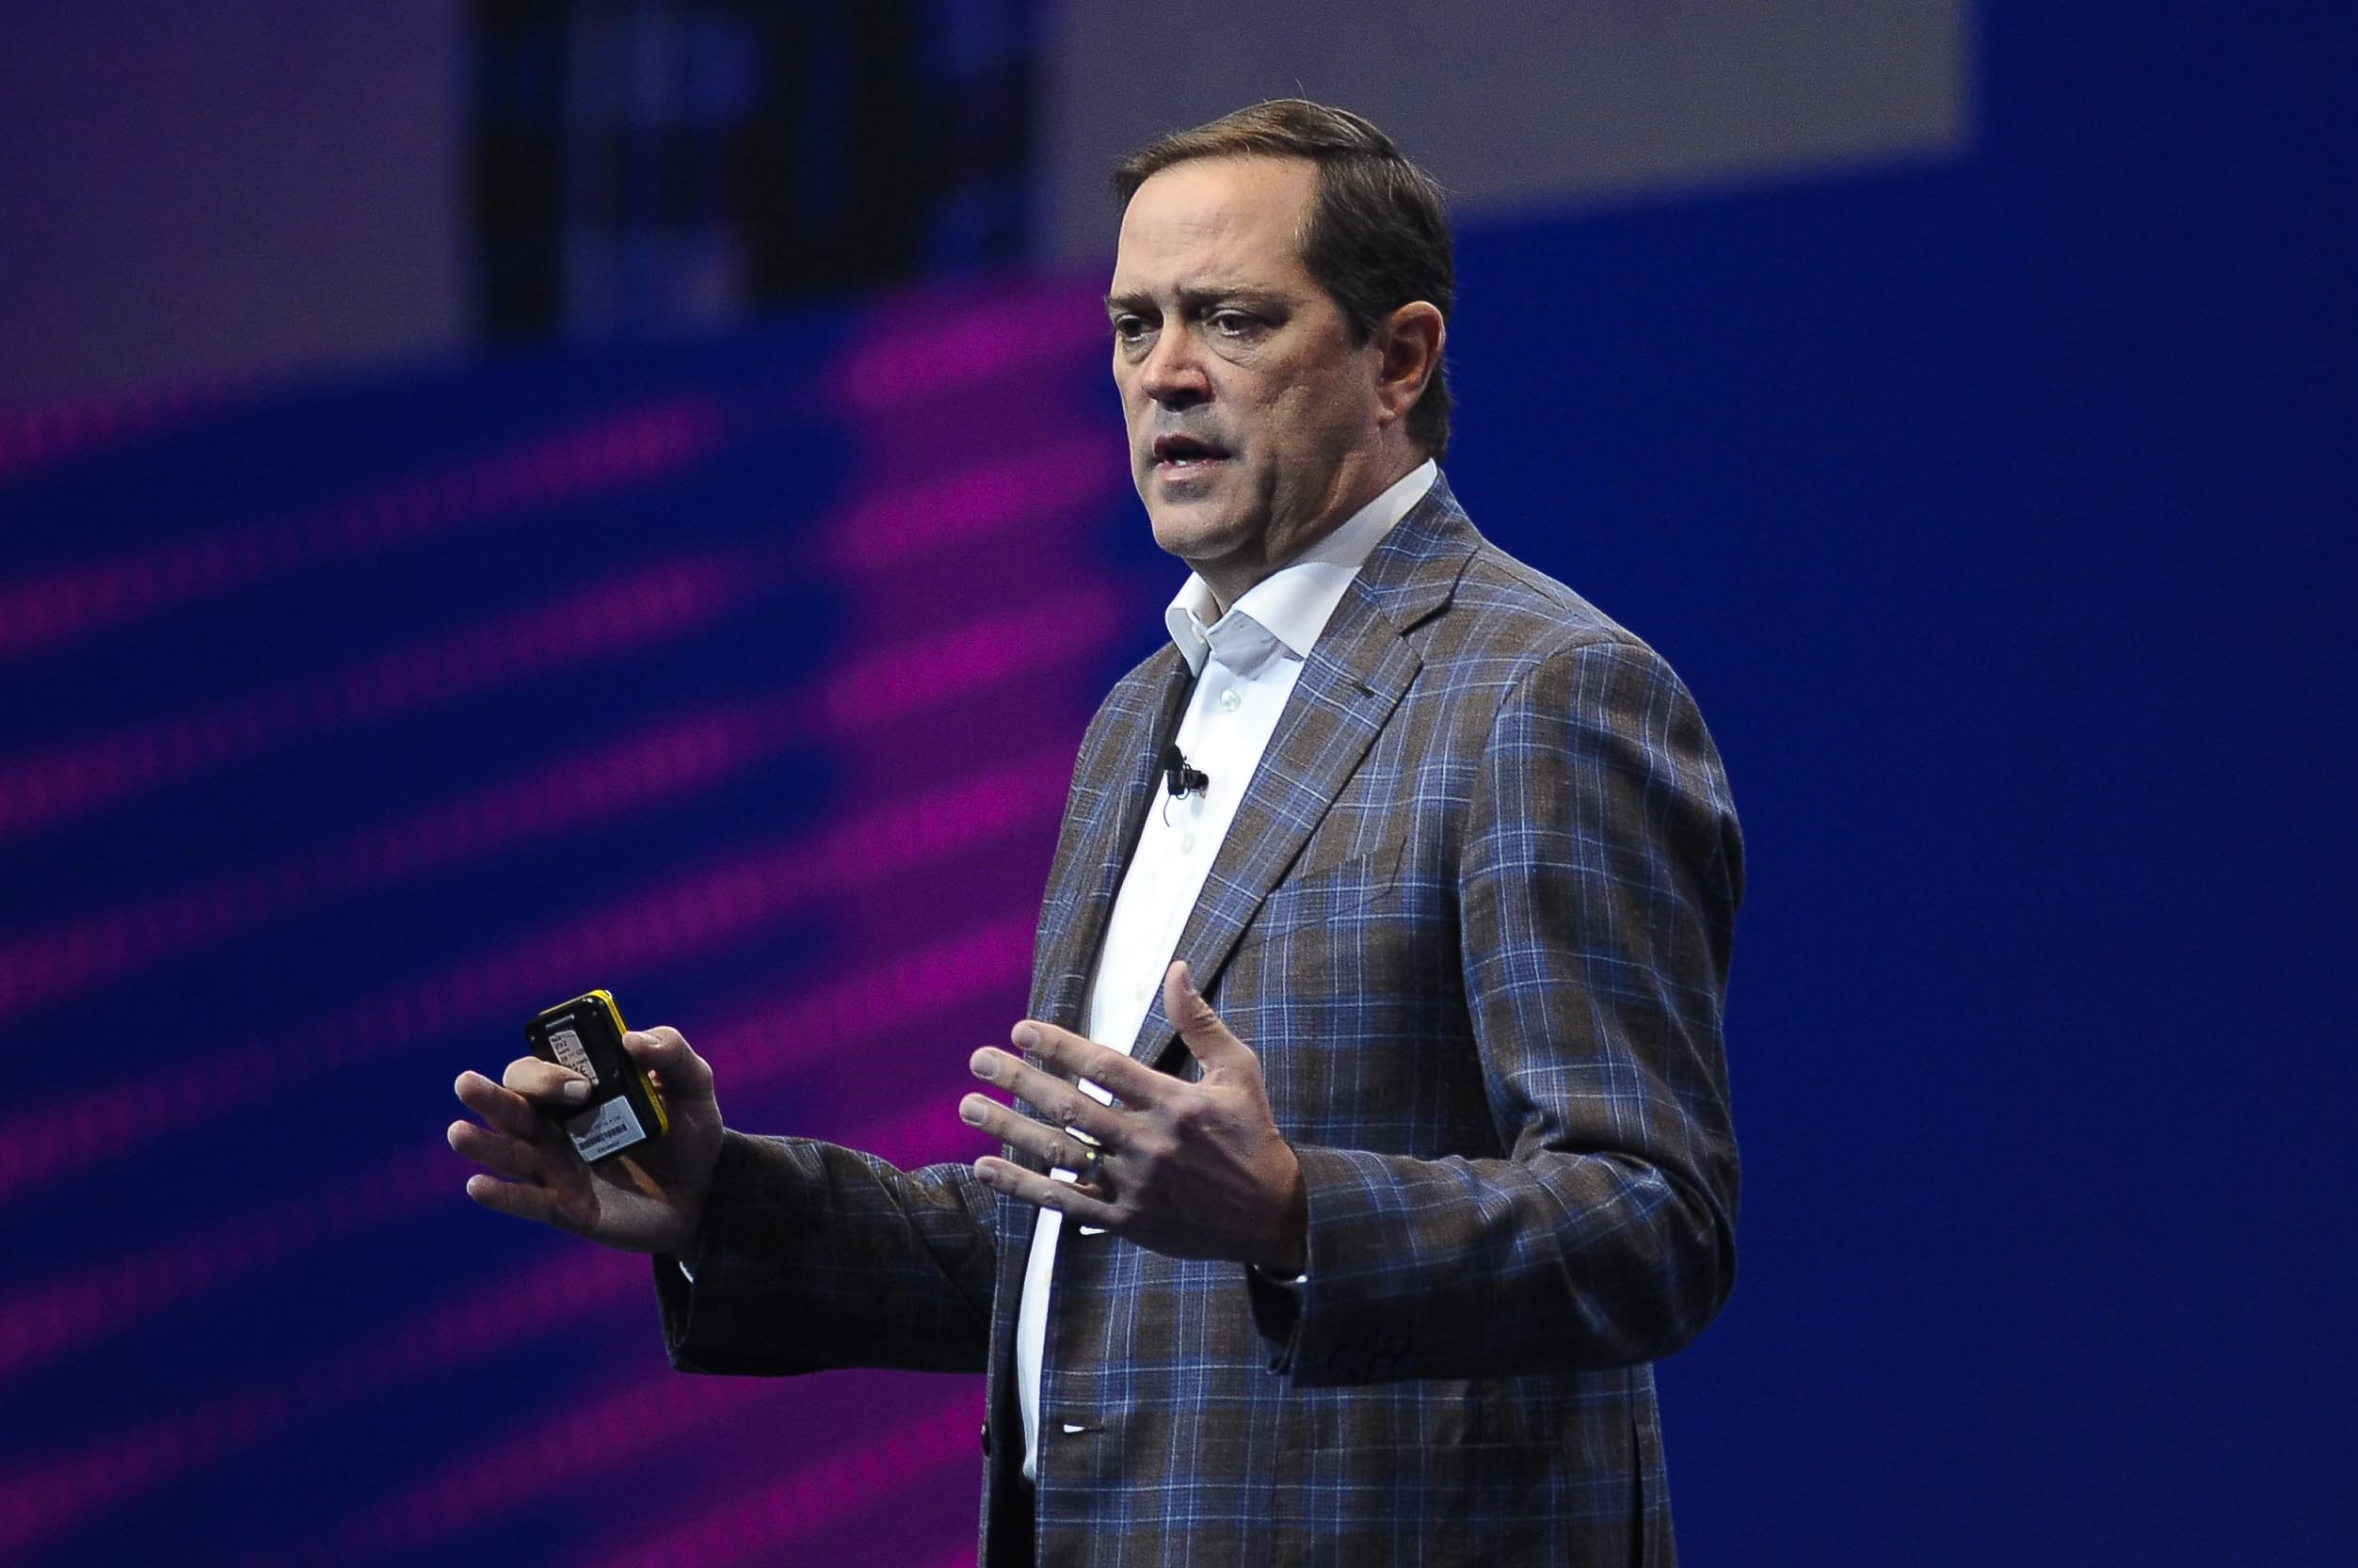 Cisco wants to use 3D so Webex meeting participants feel like they're in the room, CEO says - CNBC